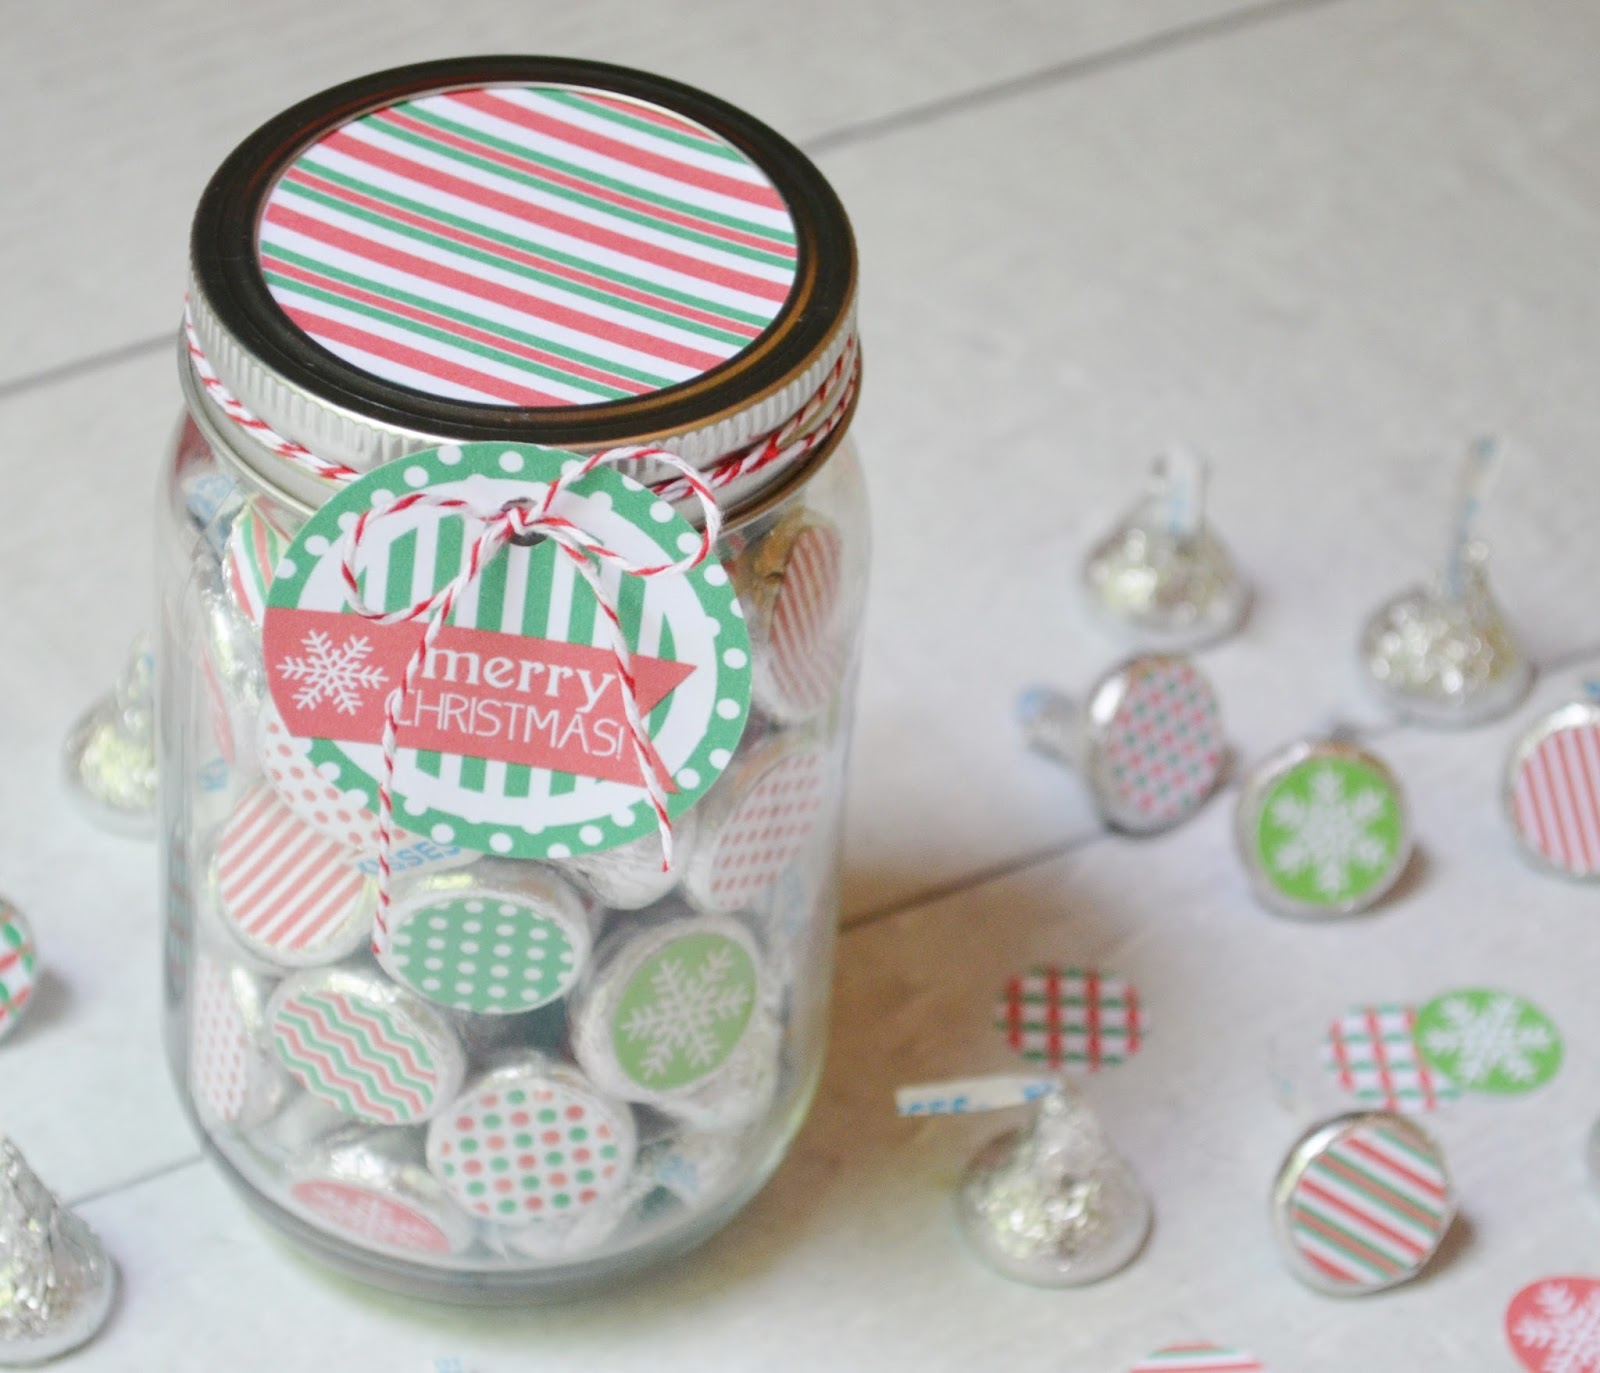 My Computer is My Canvas: {NEW} Christmas Kiss Stickers in a Mason Jar!